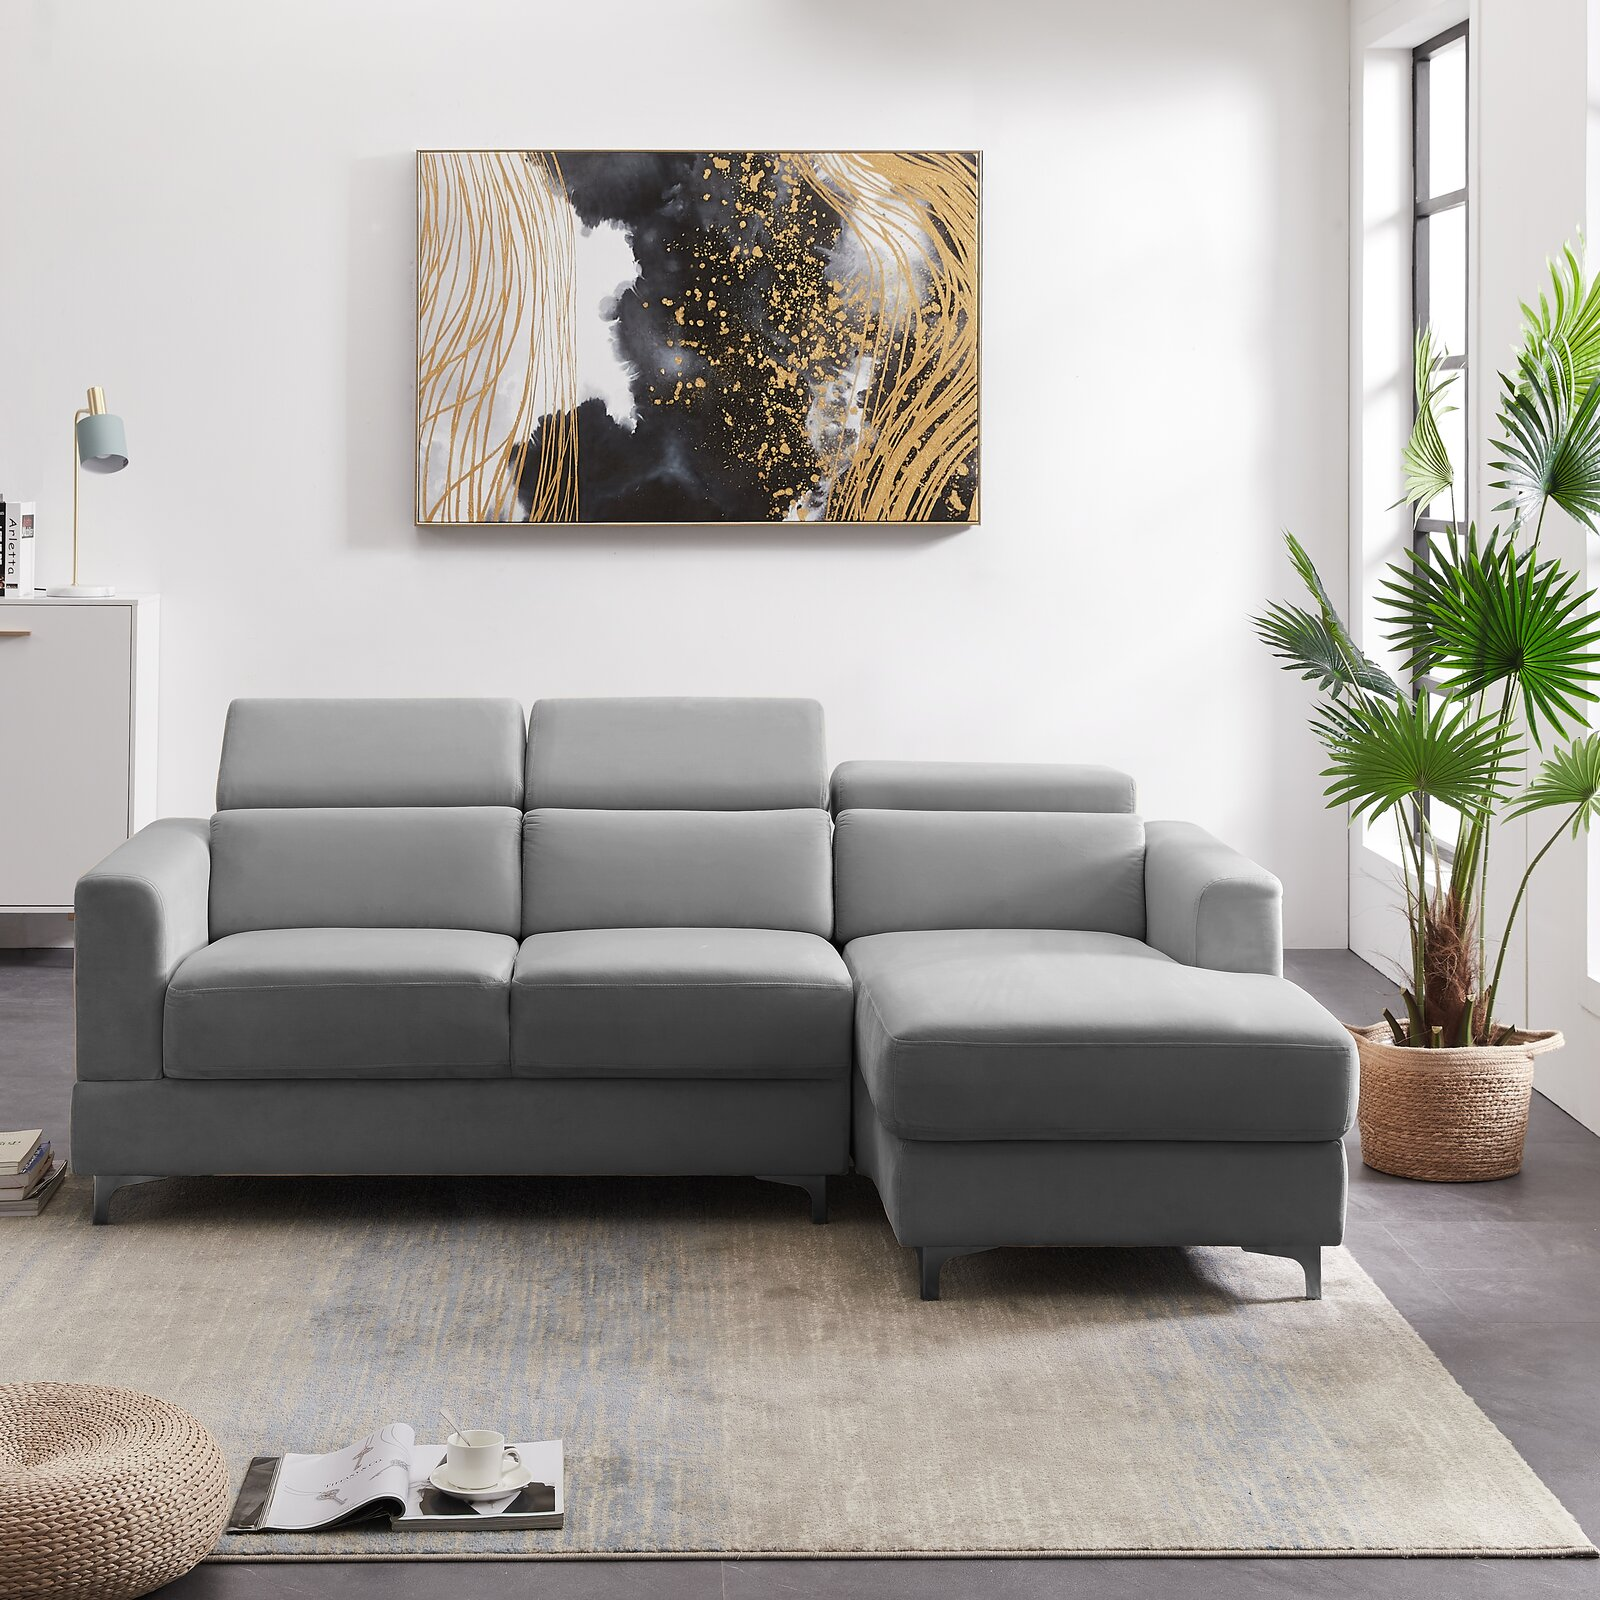 super-modern-small-grey-sectional-sofa-with-adjustable-headrests-84-inch-couch-with-chaise-grey-velvet-upholstery